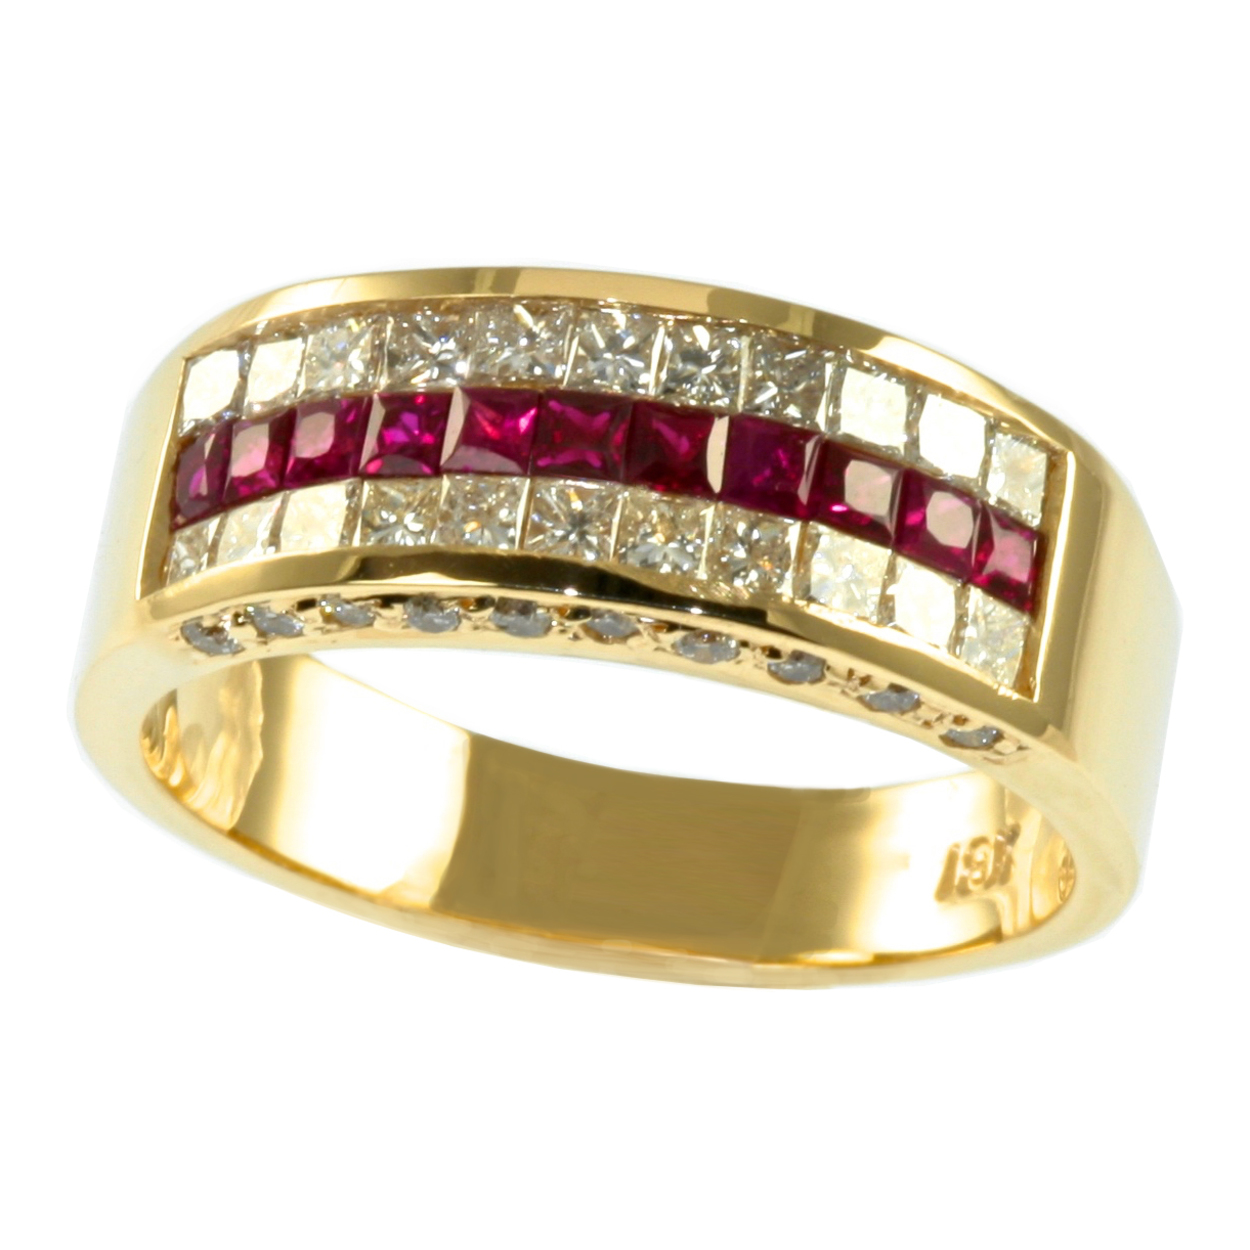 18K Yellow Gold 2 CTTW Invisible Set Real Princess Ruby Diamond